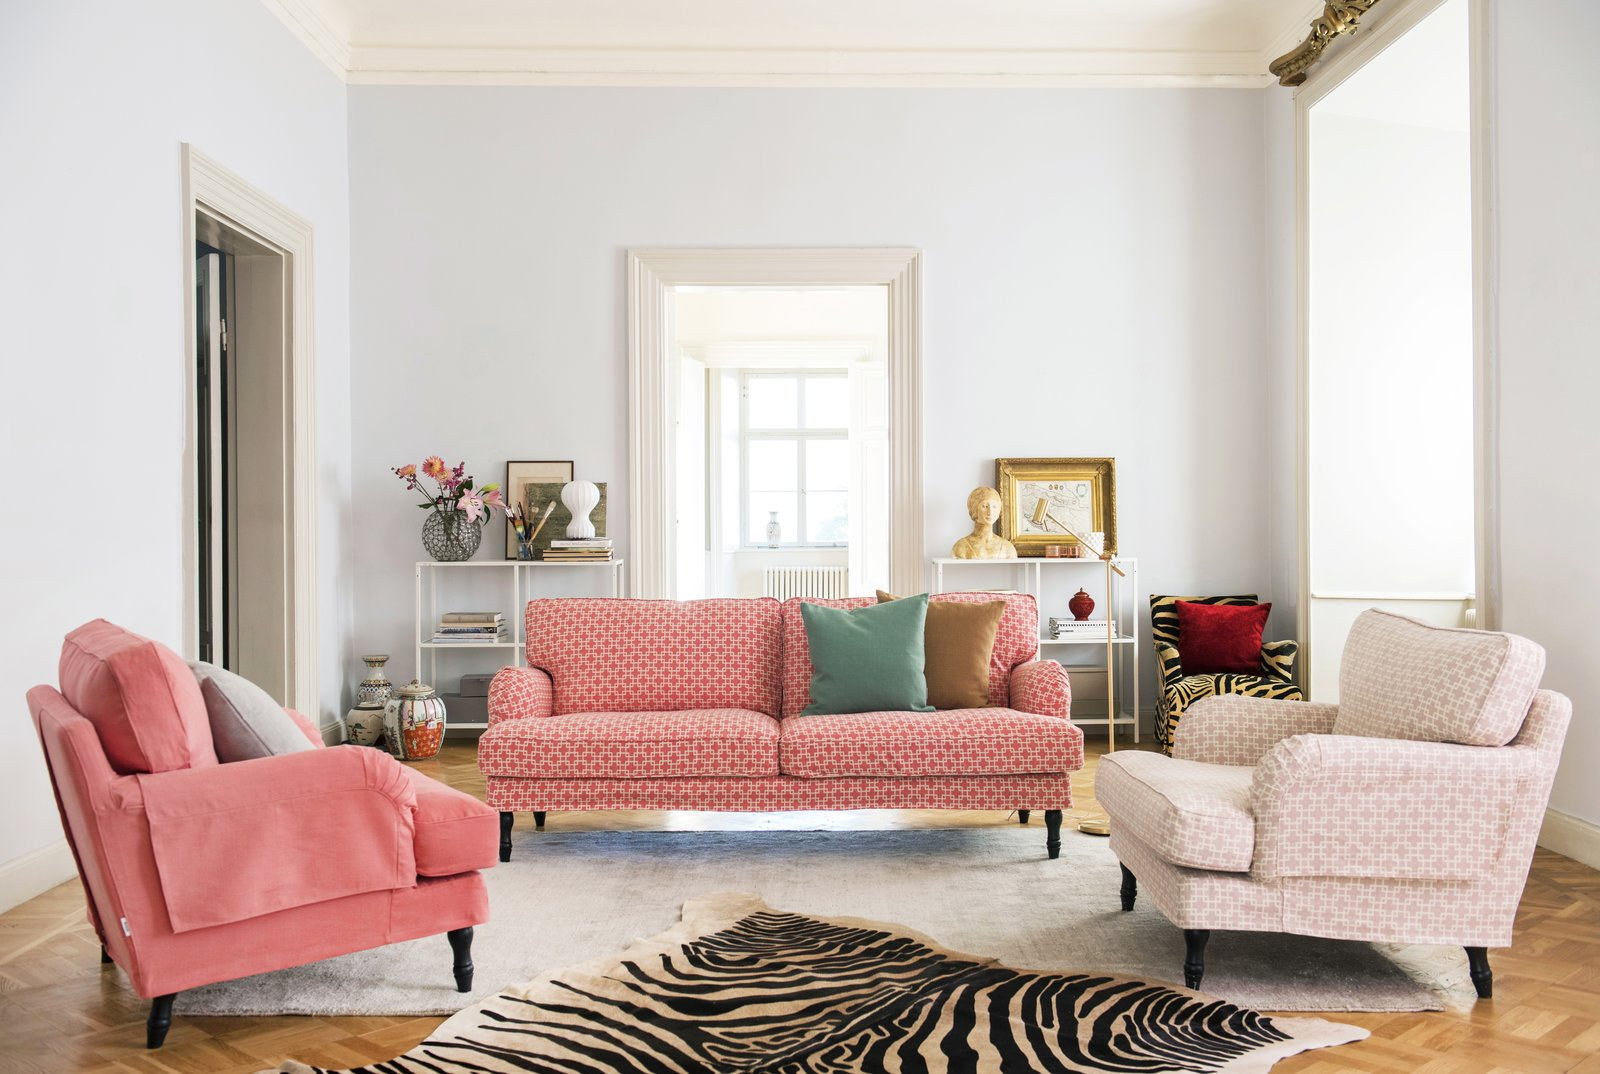 IKEA Stocksund sofa with a Bemz cover in Cubis Pomela. IKEA Stocksund armchair with a Bemz x Romo cover in Cubis Rose Quartz and Linara Pomela.  Photo 5 of 13 in 15 Flower Arrangements That Will Brighten Your Home on Valentine's Day